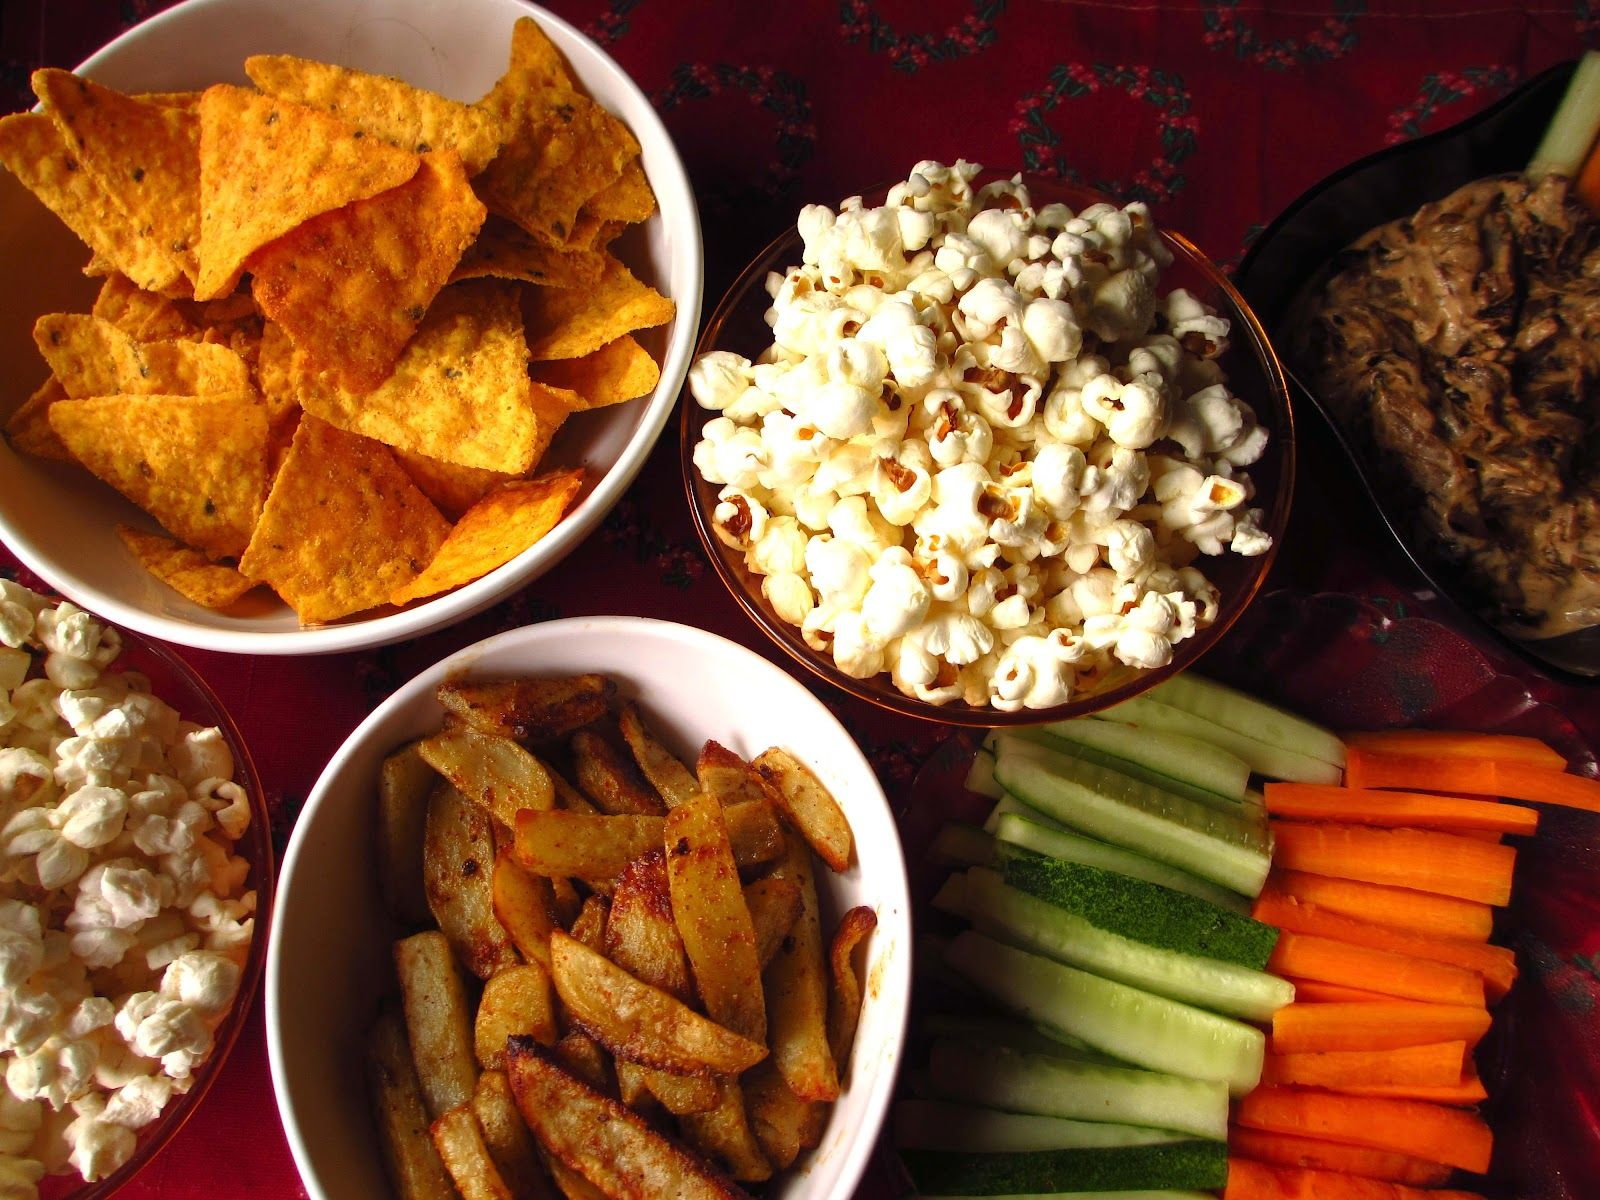 Runner Girl in the Kitchen - Healthy Dip, Baked Potato Wedges and Popcorn